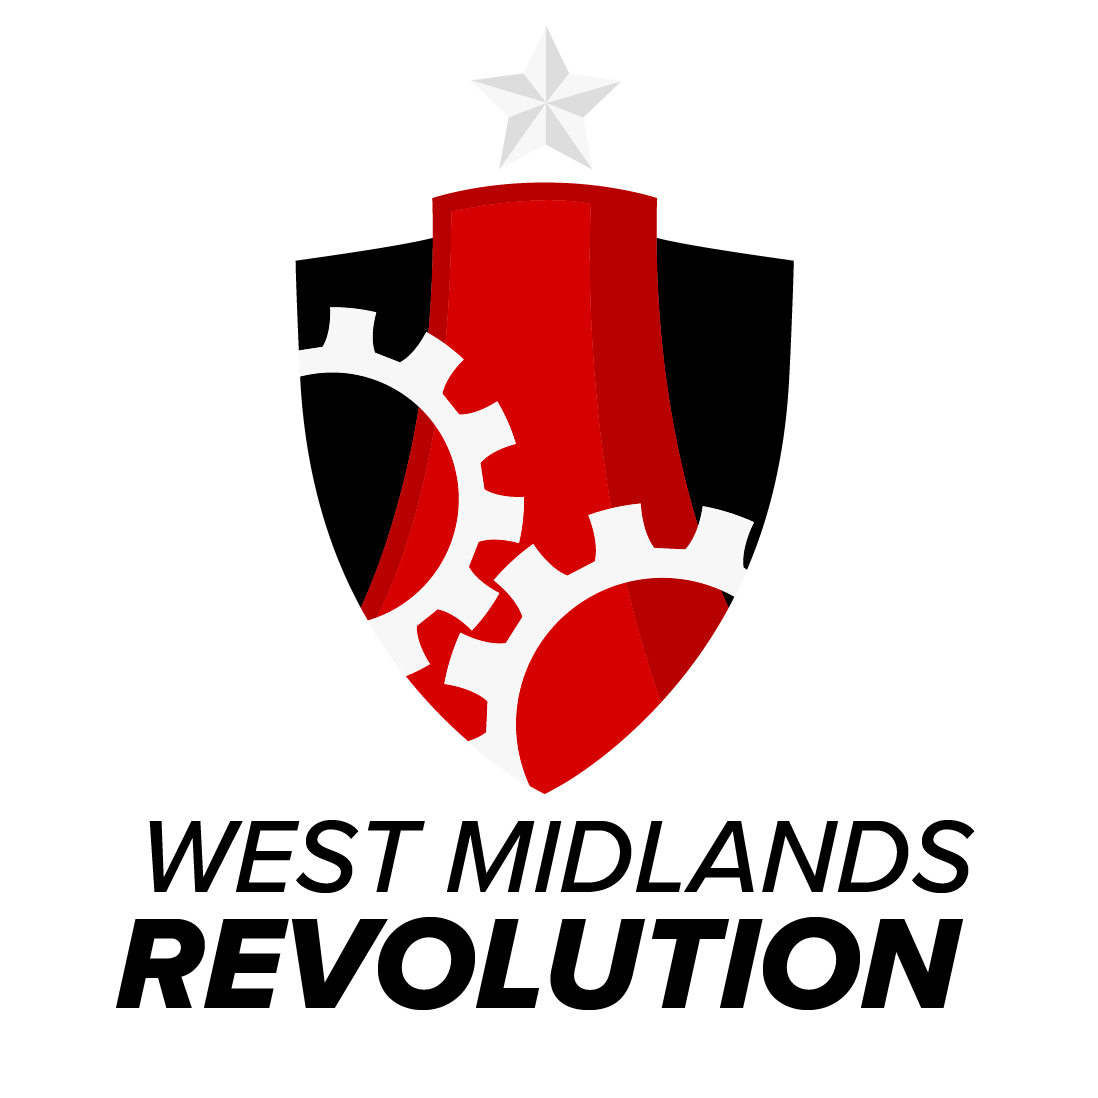 West Midlands Revolution